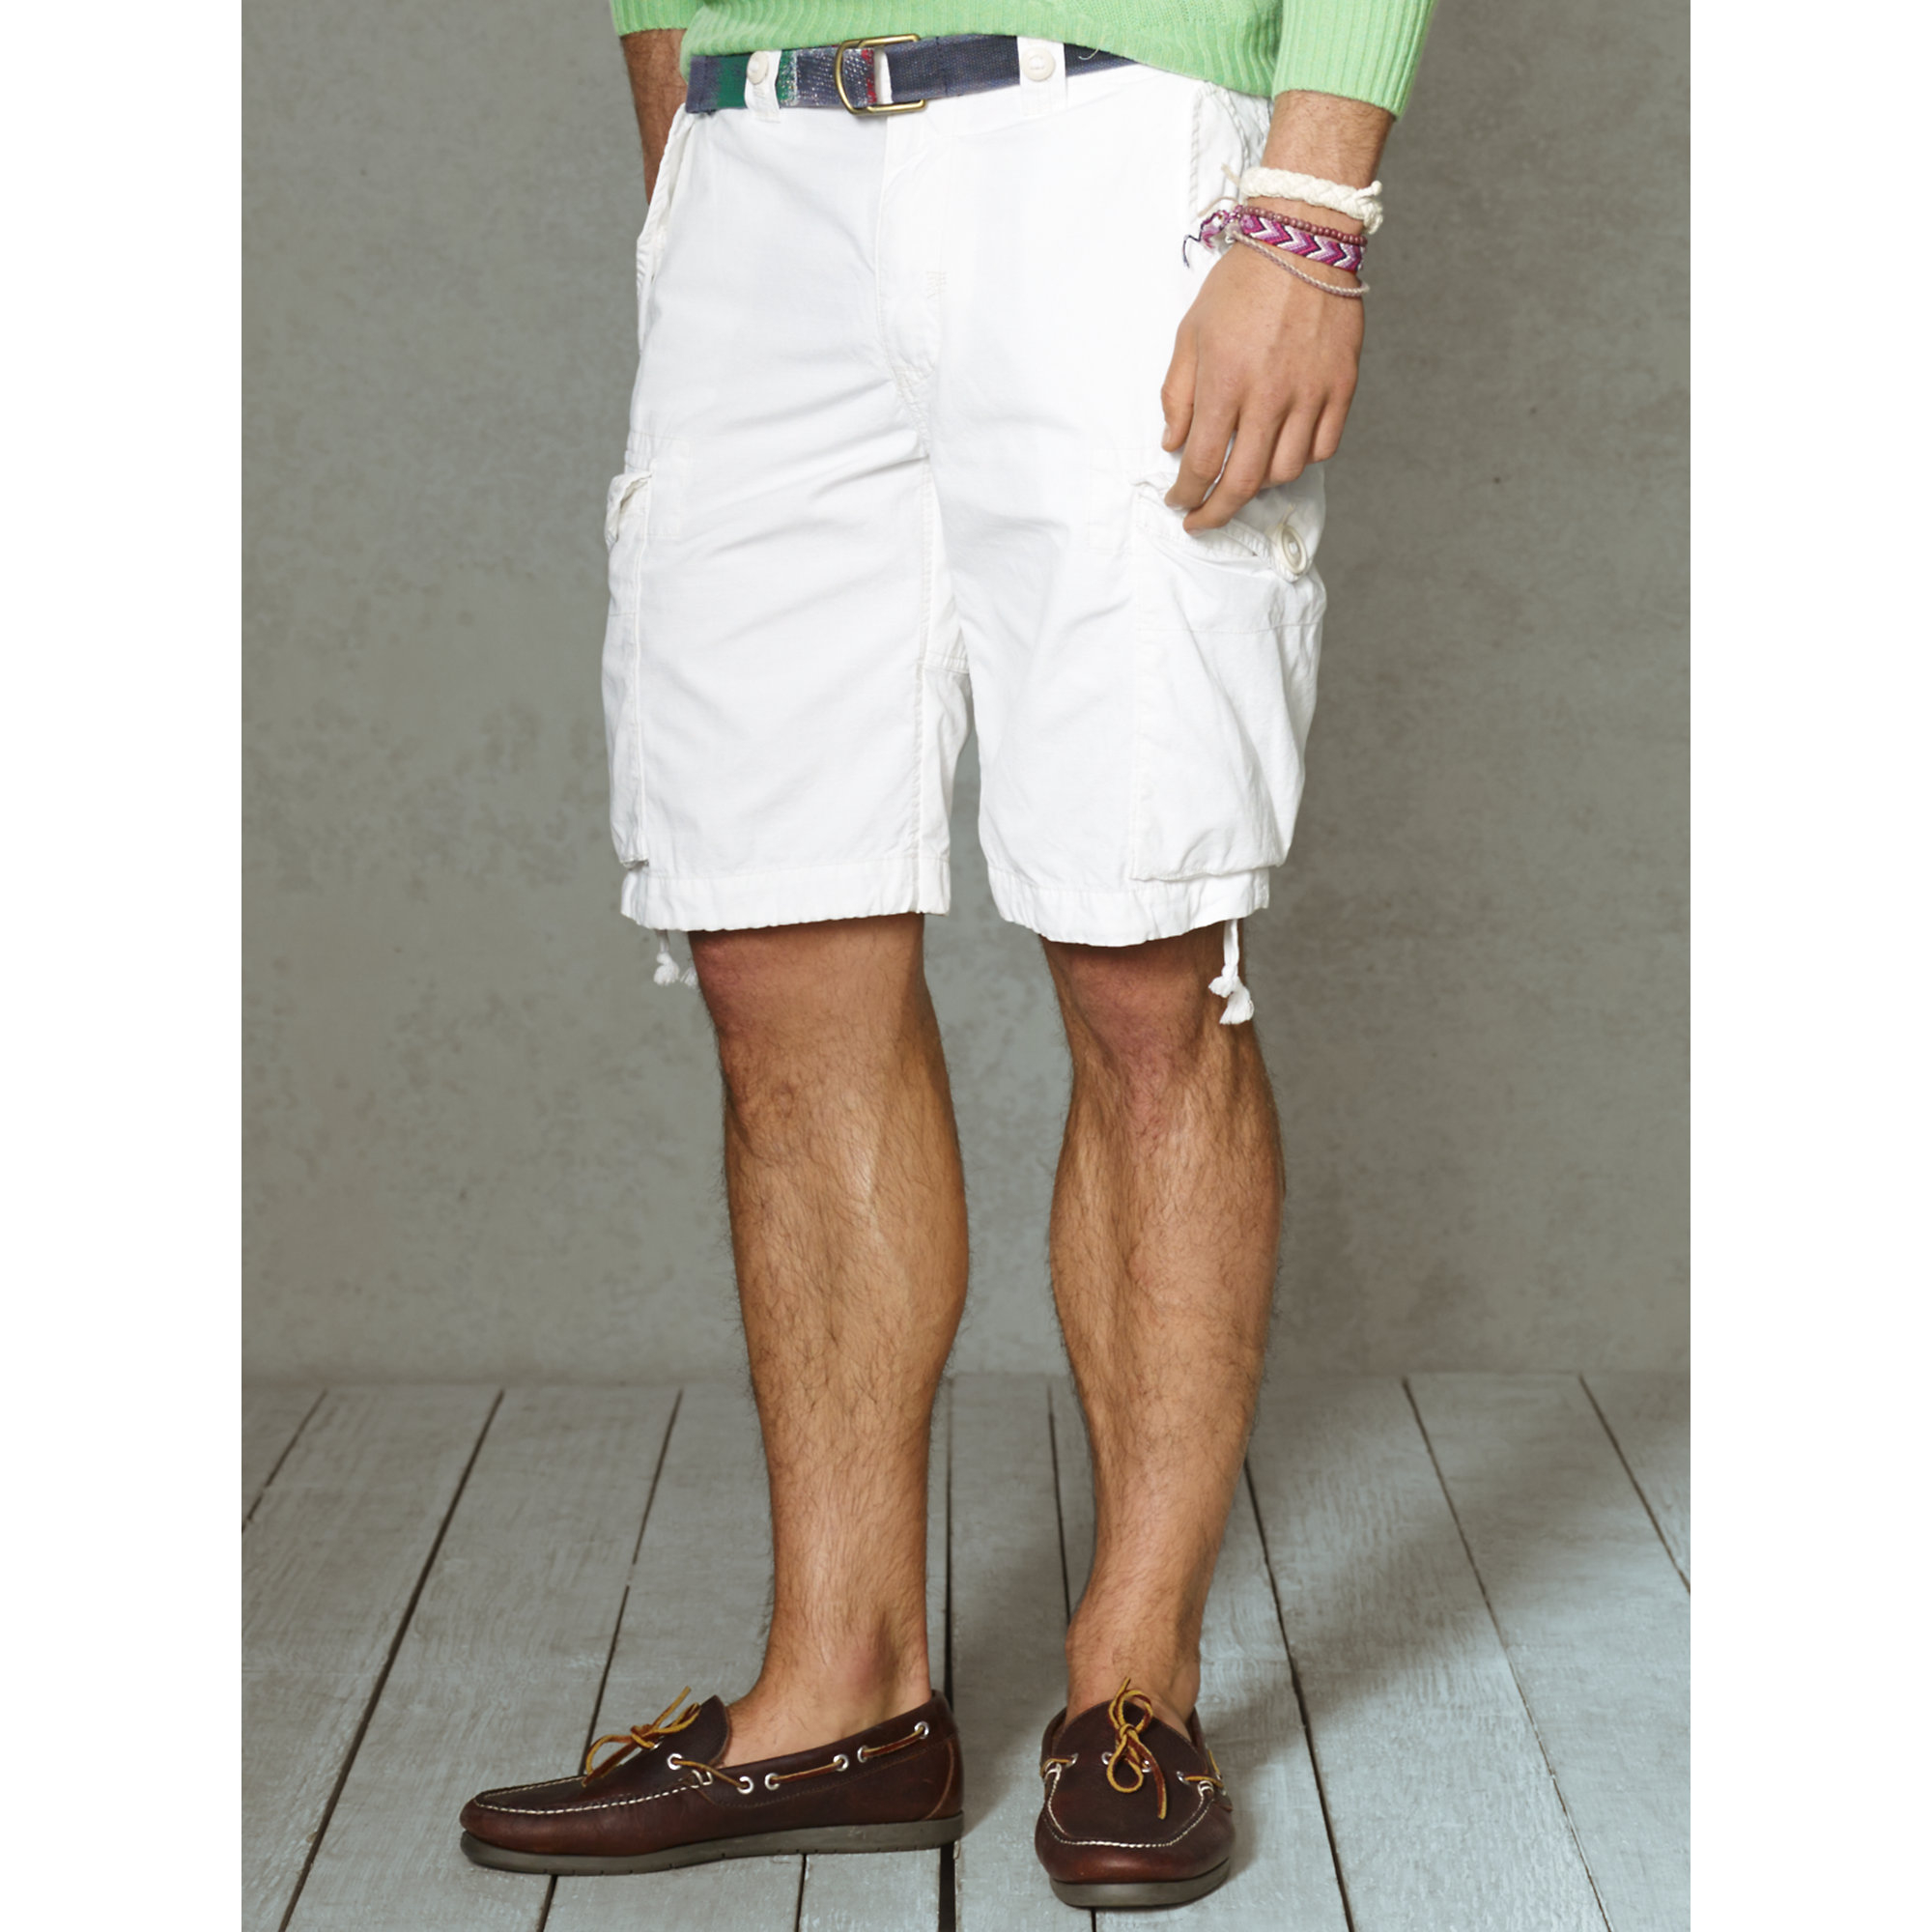 3f7a1a537f Polo Ralph Lauren Classic-Fit Cargo Short in White for Men - Lyst